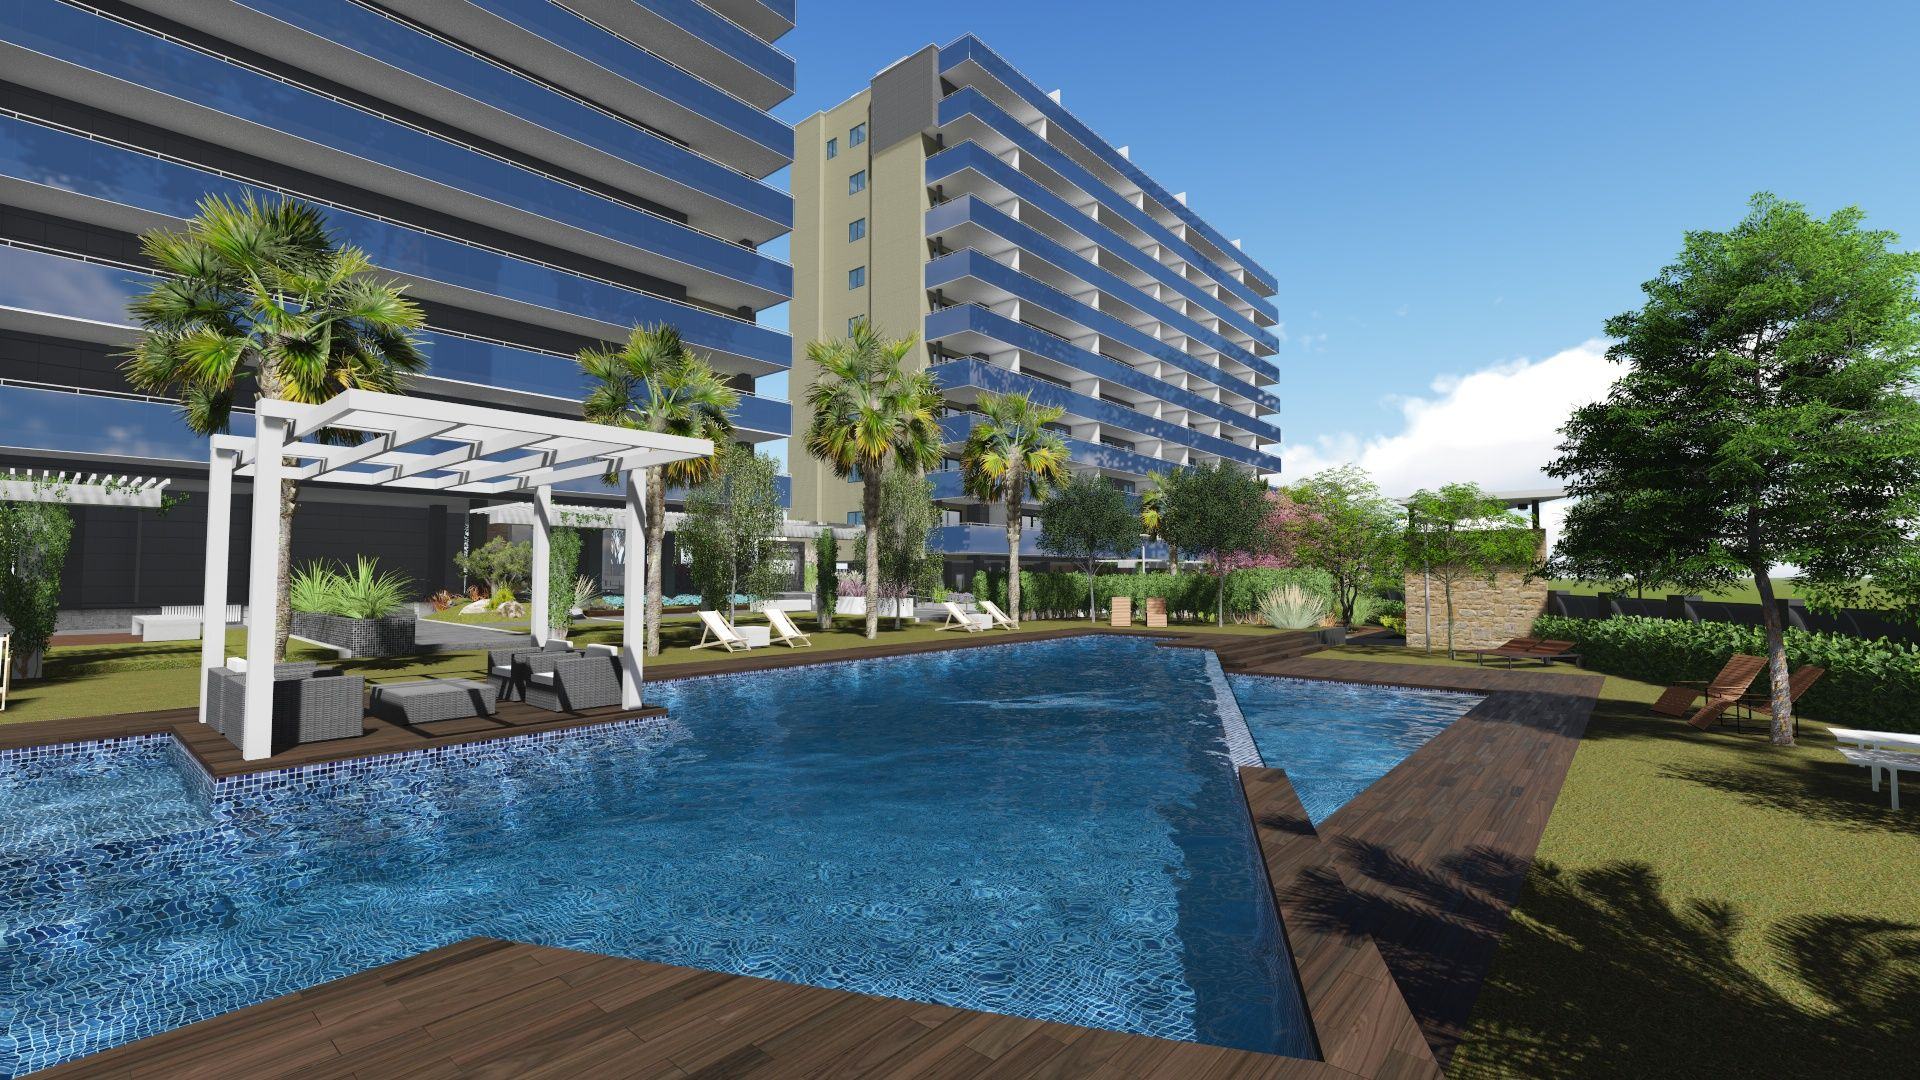 Flats up to 3 bedrooms next to Campello beach 1